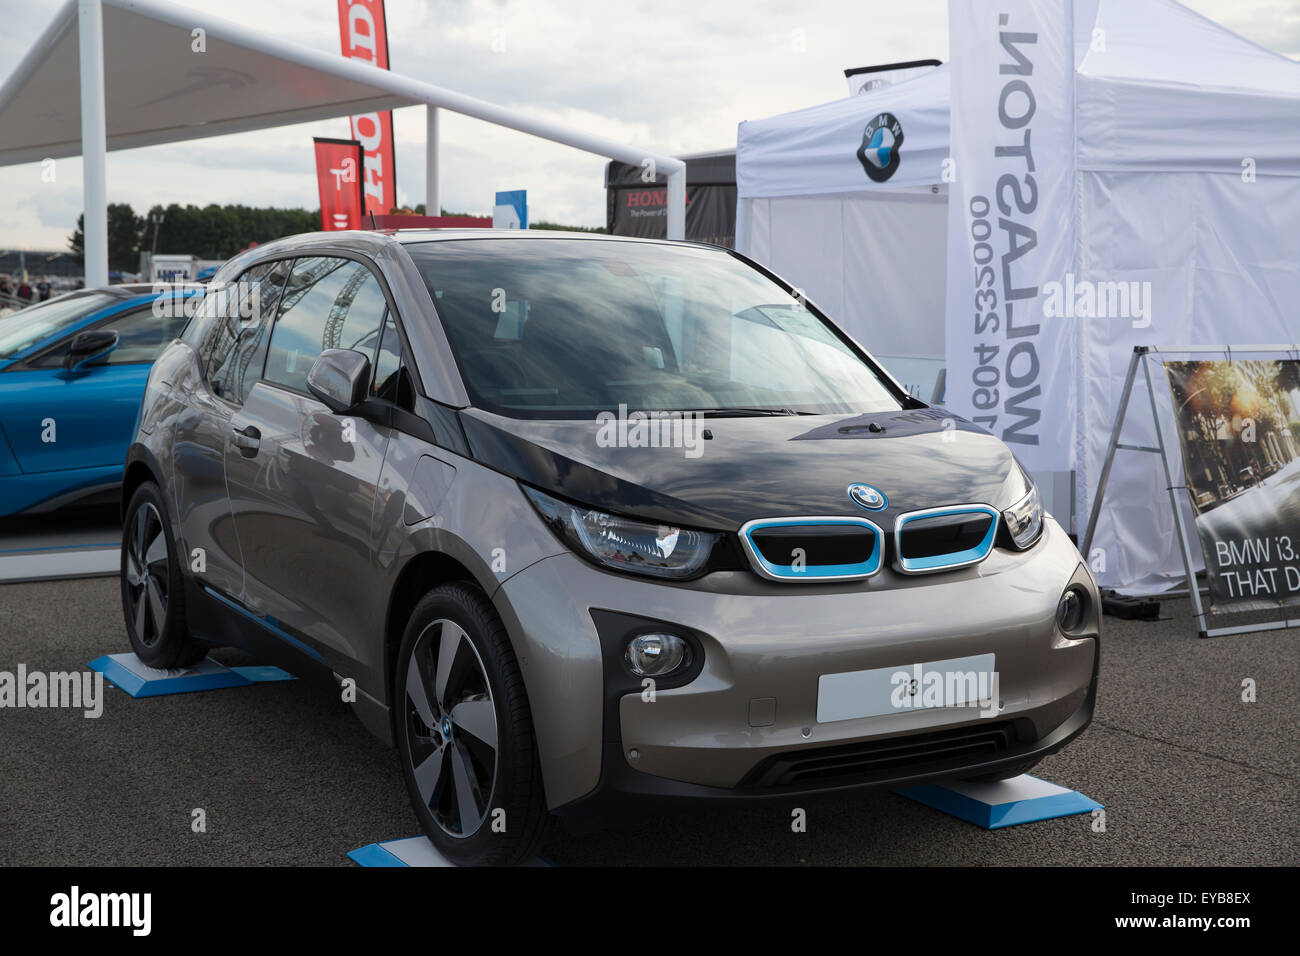 Silverstone Uk 25th July 2015 The New Bmw I3 Electric Car At